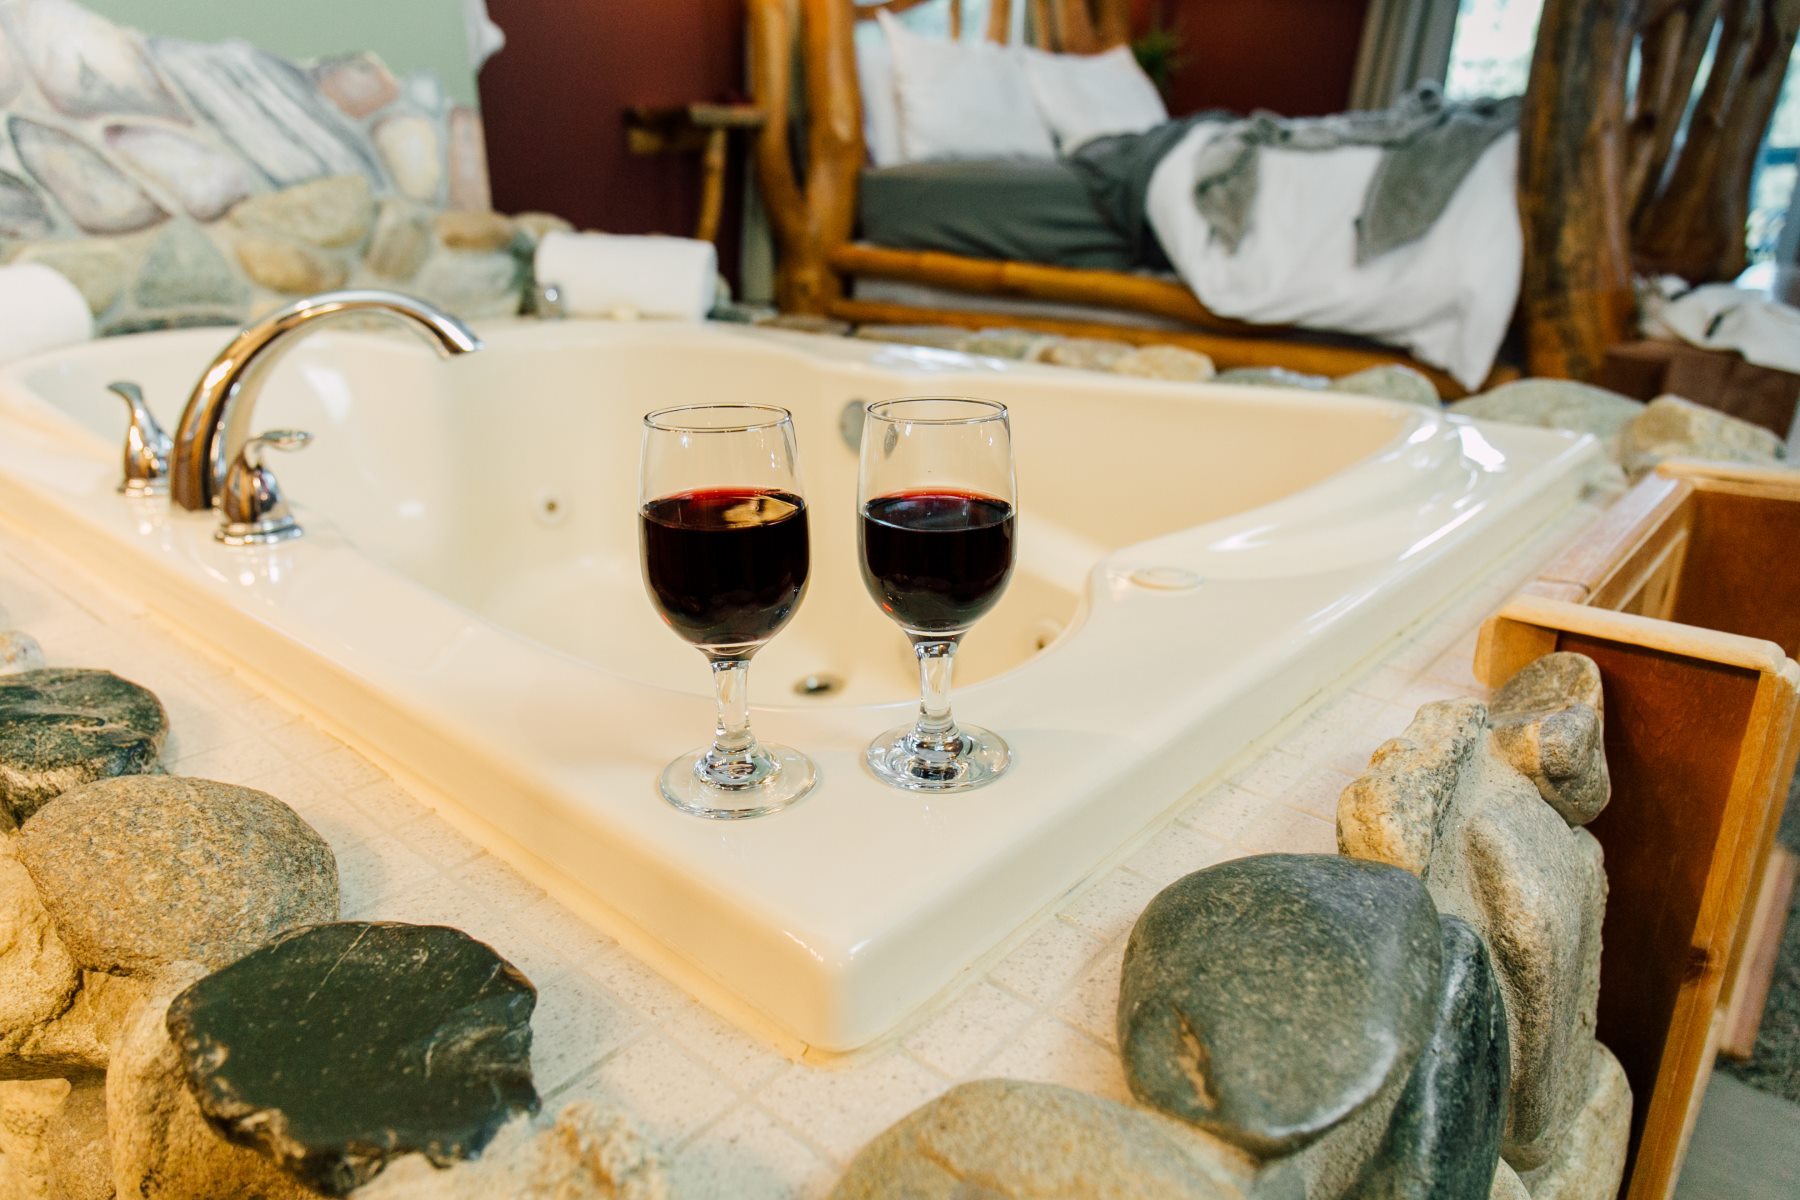 nason suite tub with wine glasses